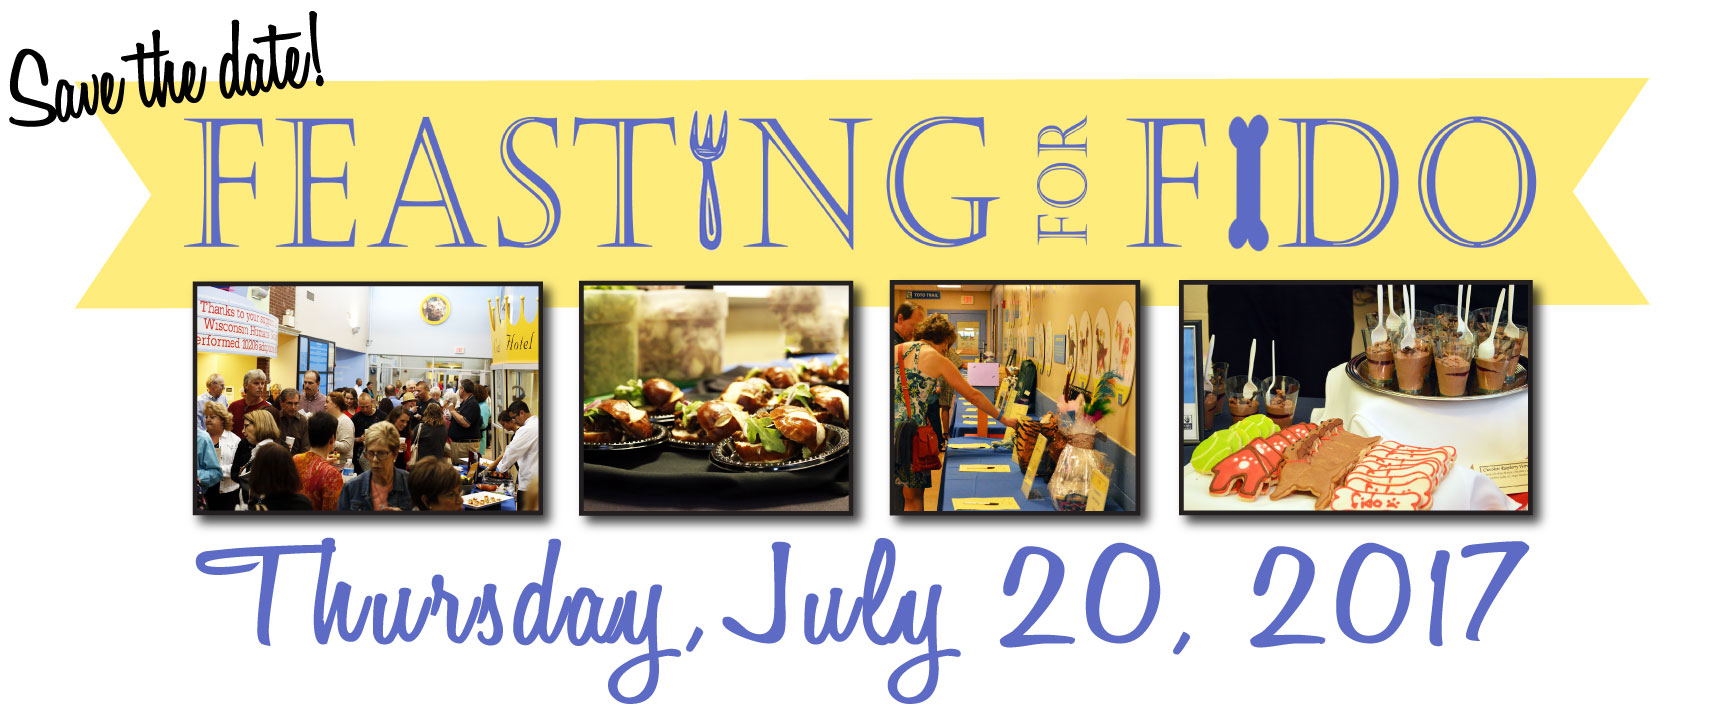 2017 Feasting for Fido